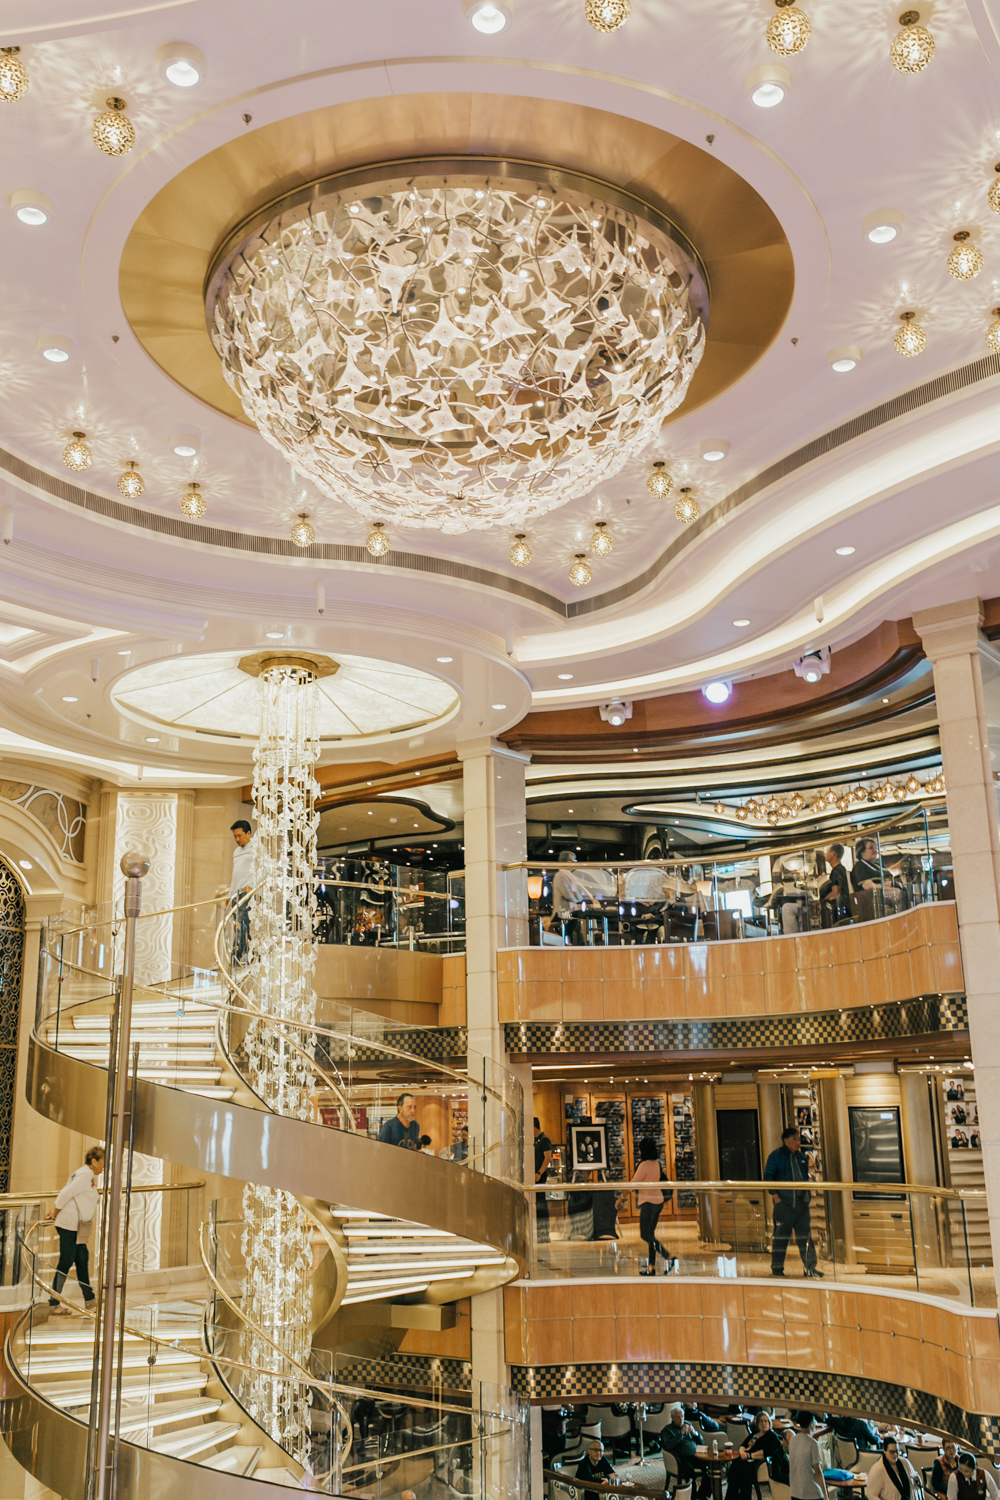 livvyland-blog-olivia-watson-travel-fashion-blogger-princess-cruises-regal-ship-what-to-do-on-board-cruise-boat-foyer